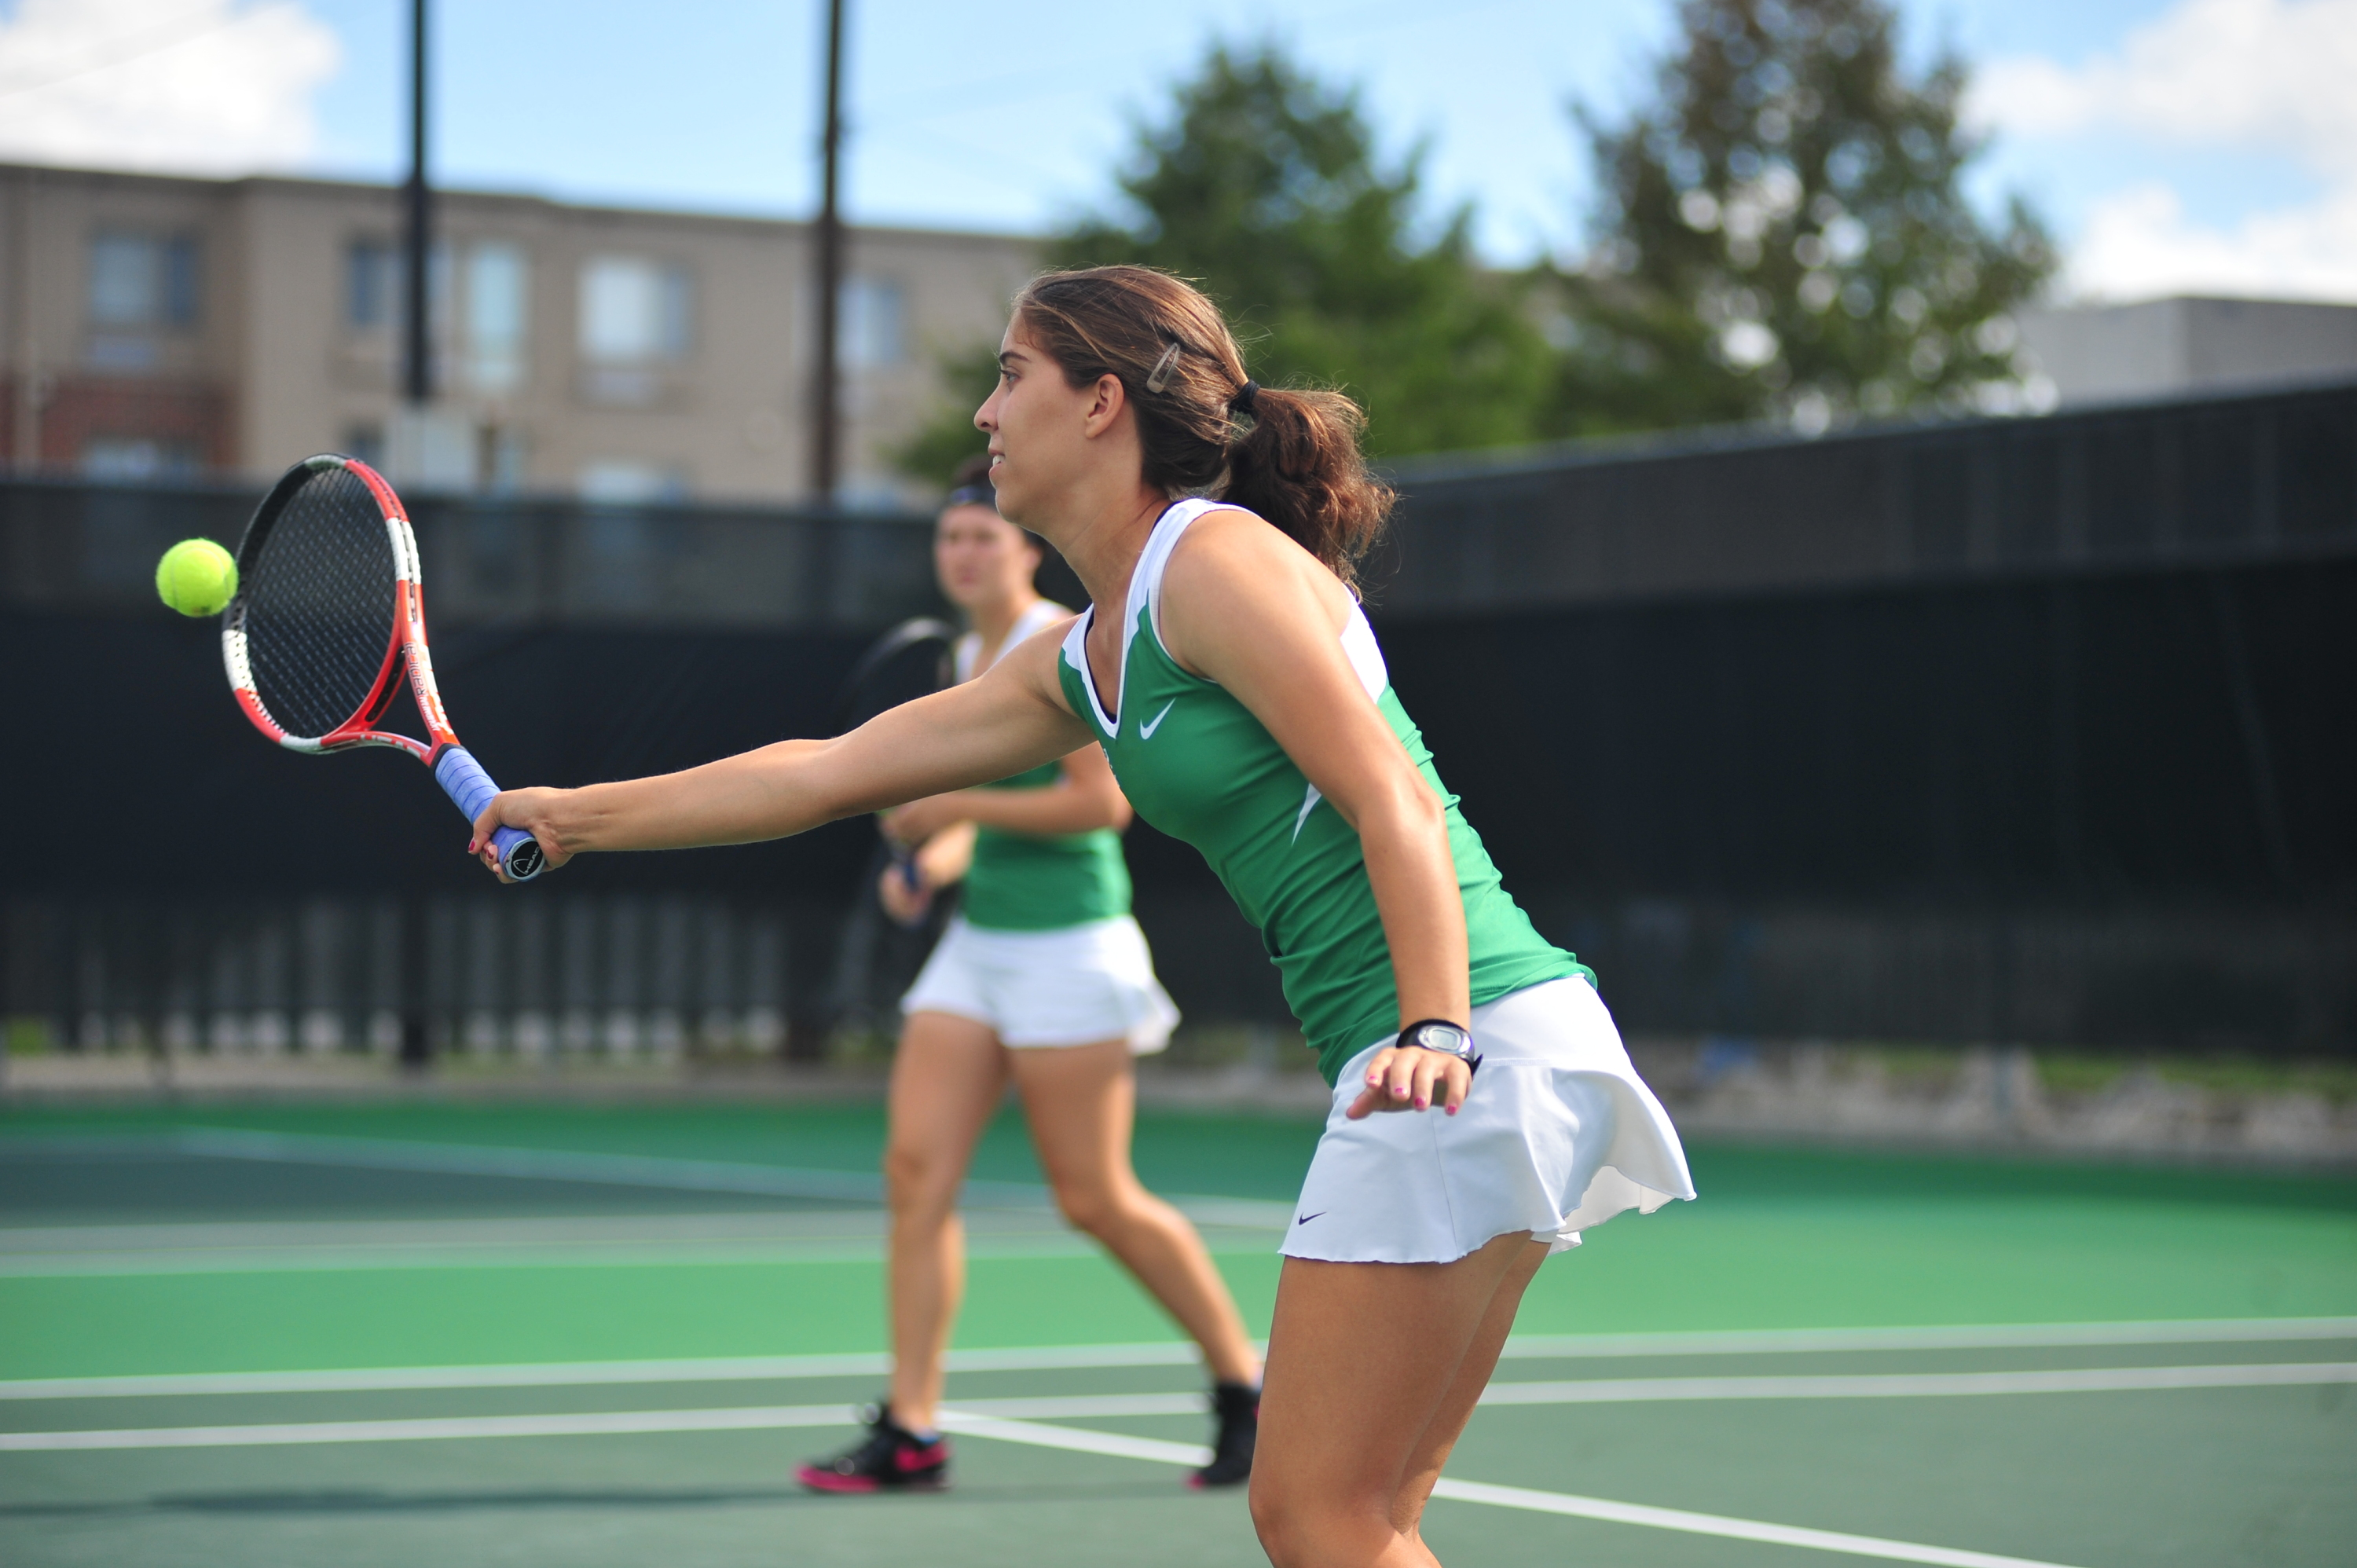 Rachael Morales earned a singles and a doubles win